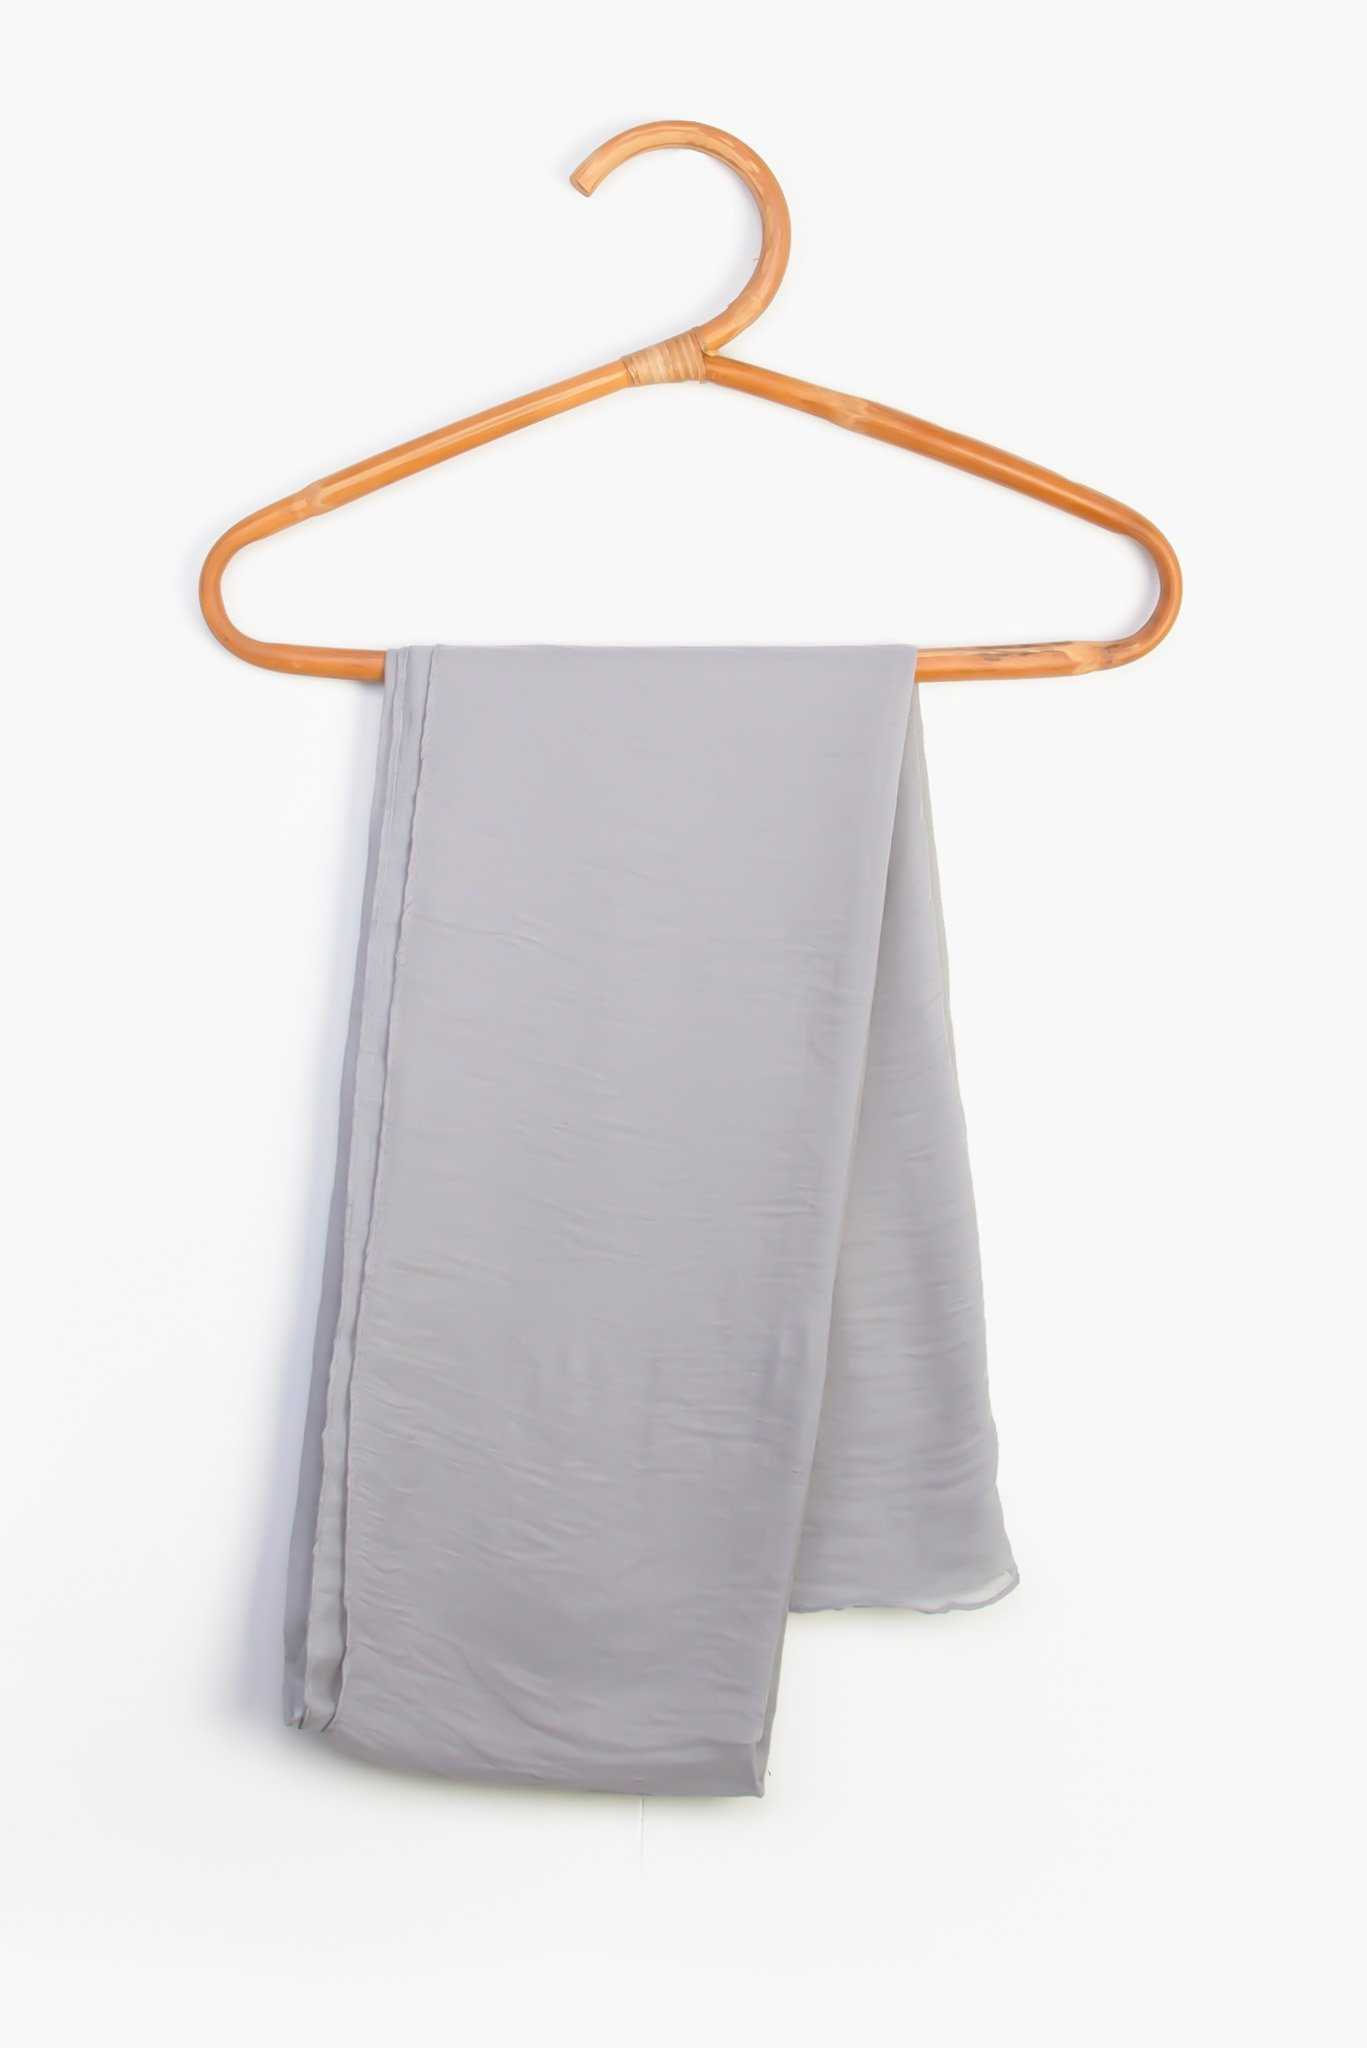 Scarf - Grey | Raw Orange